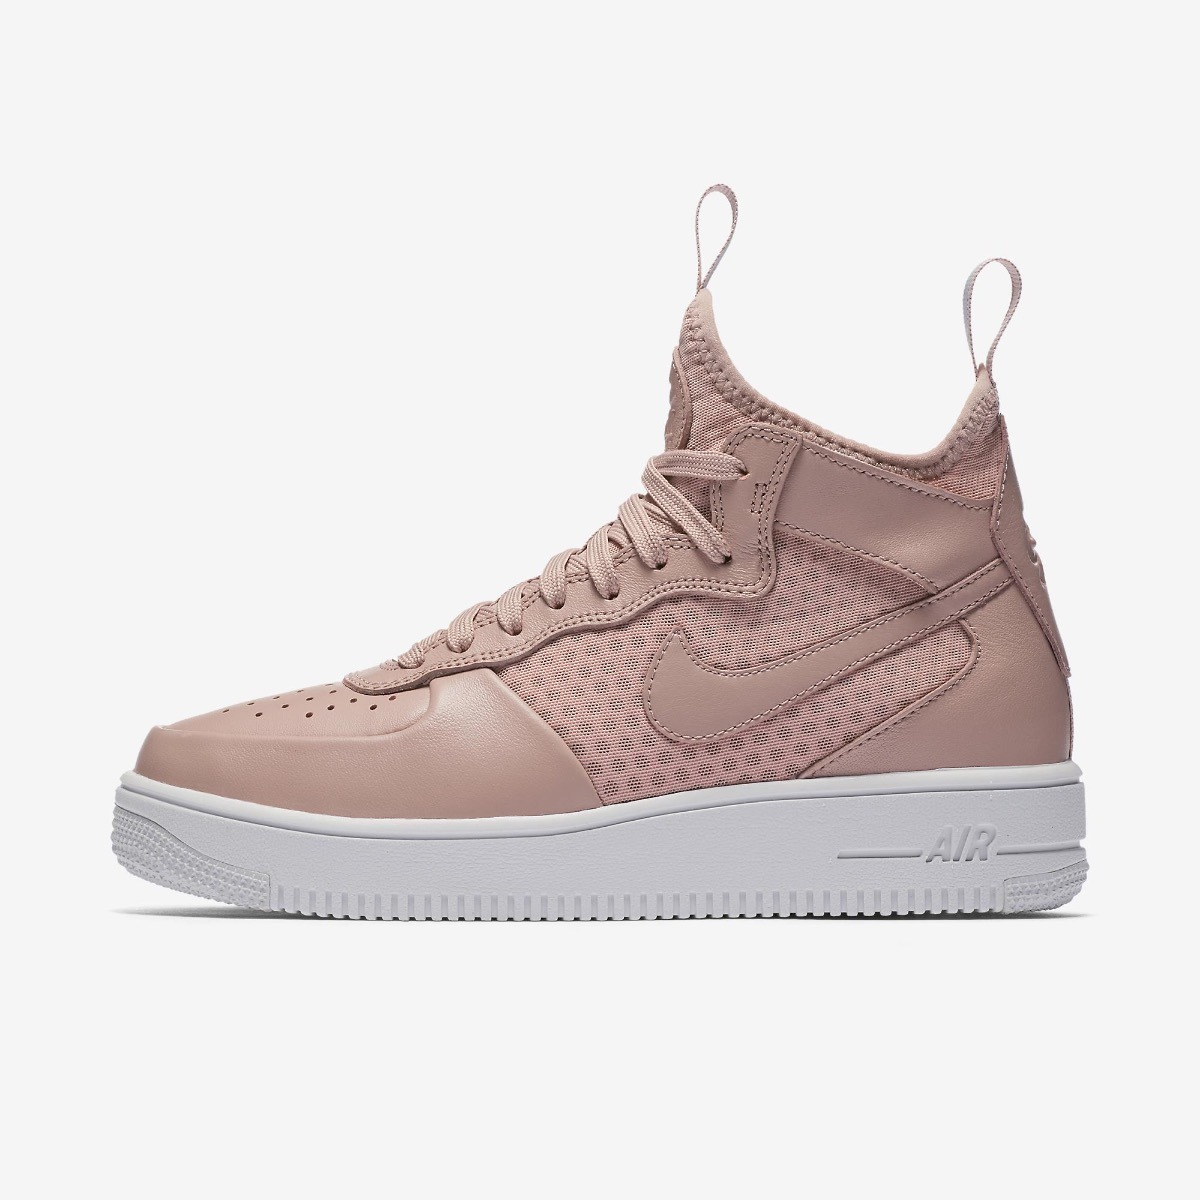 Nike Ultraforce Force Air 1 Mid Style Tênis Retro n0vm8wN